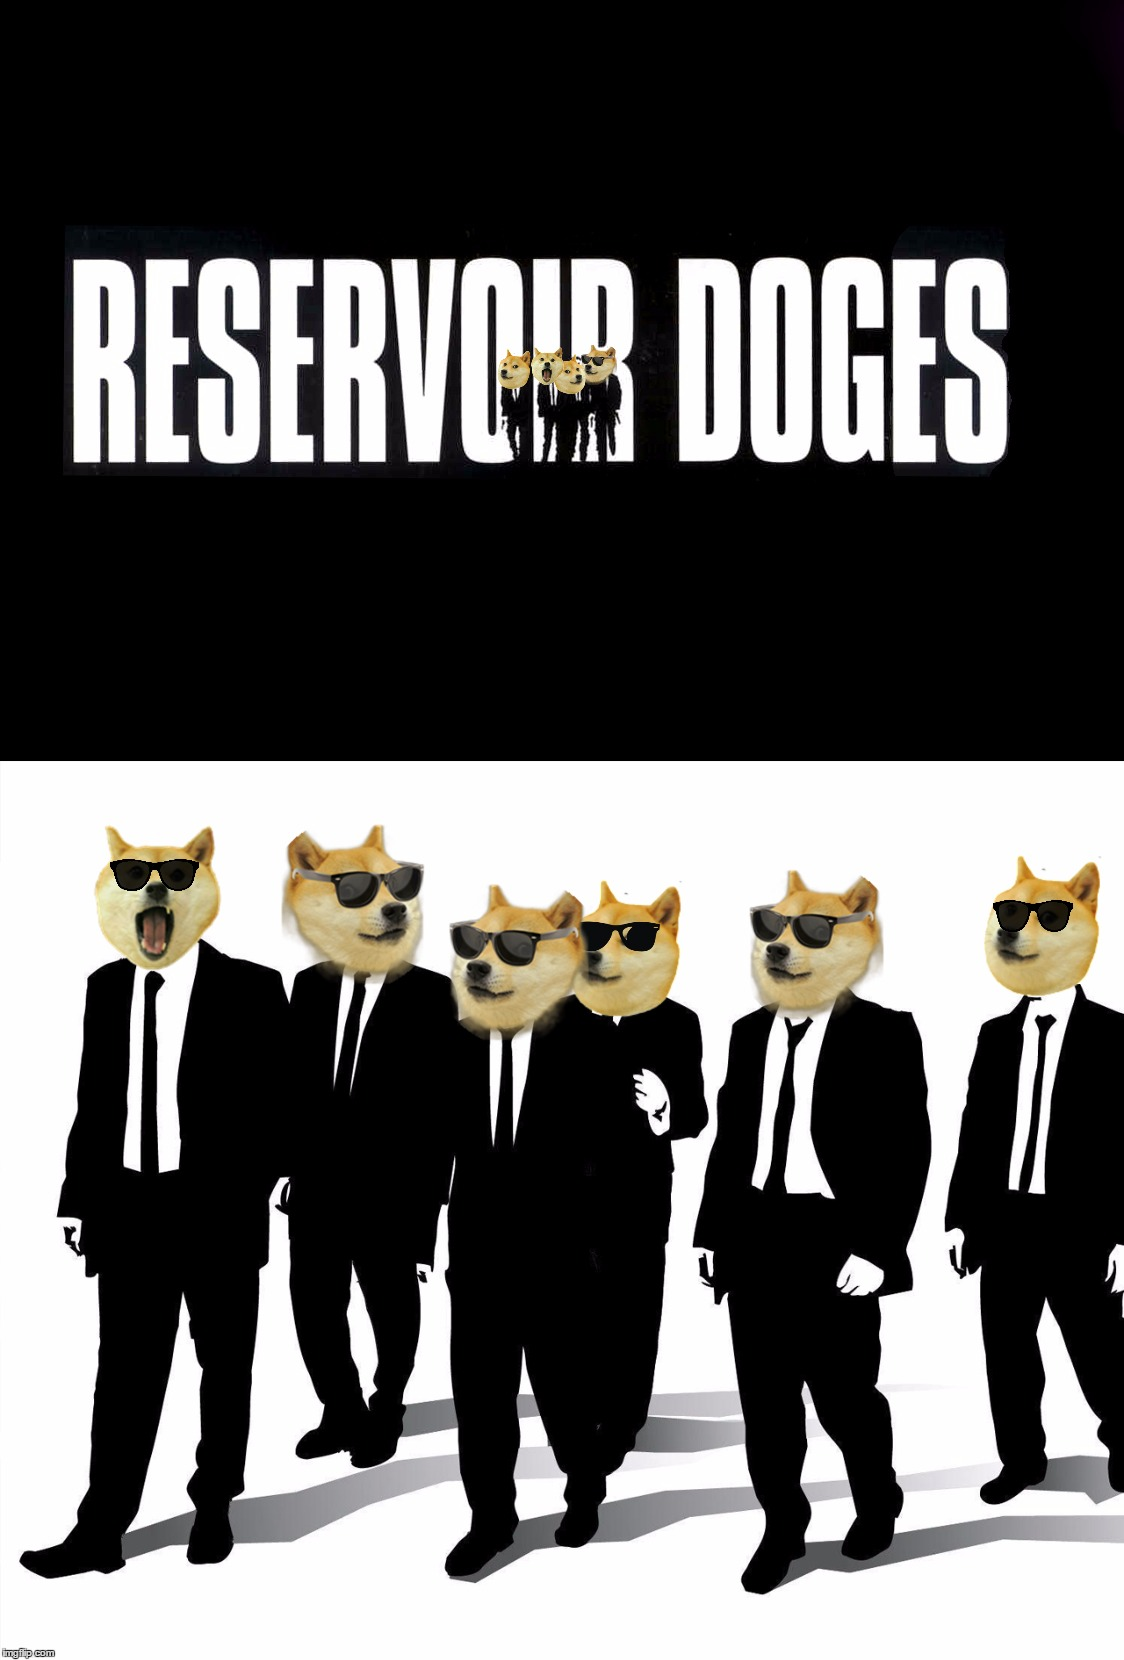 Reservoir Doges. Thanks to tokinjester https://imgflip.com/i/1eh7ay | image tagged in memes,reservoir dogs,doge,movies,movie memes | made w/ Imgflip meme maker